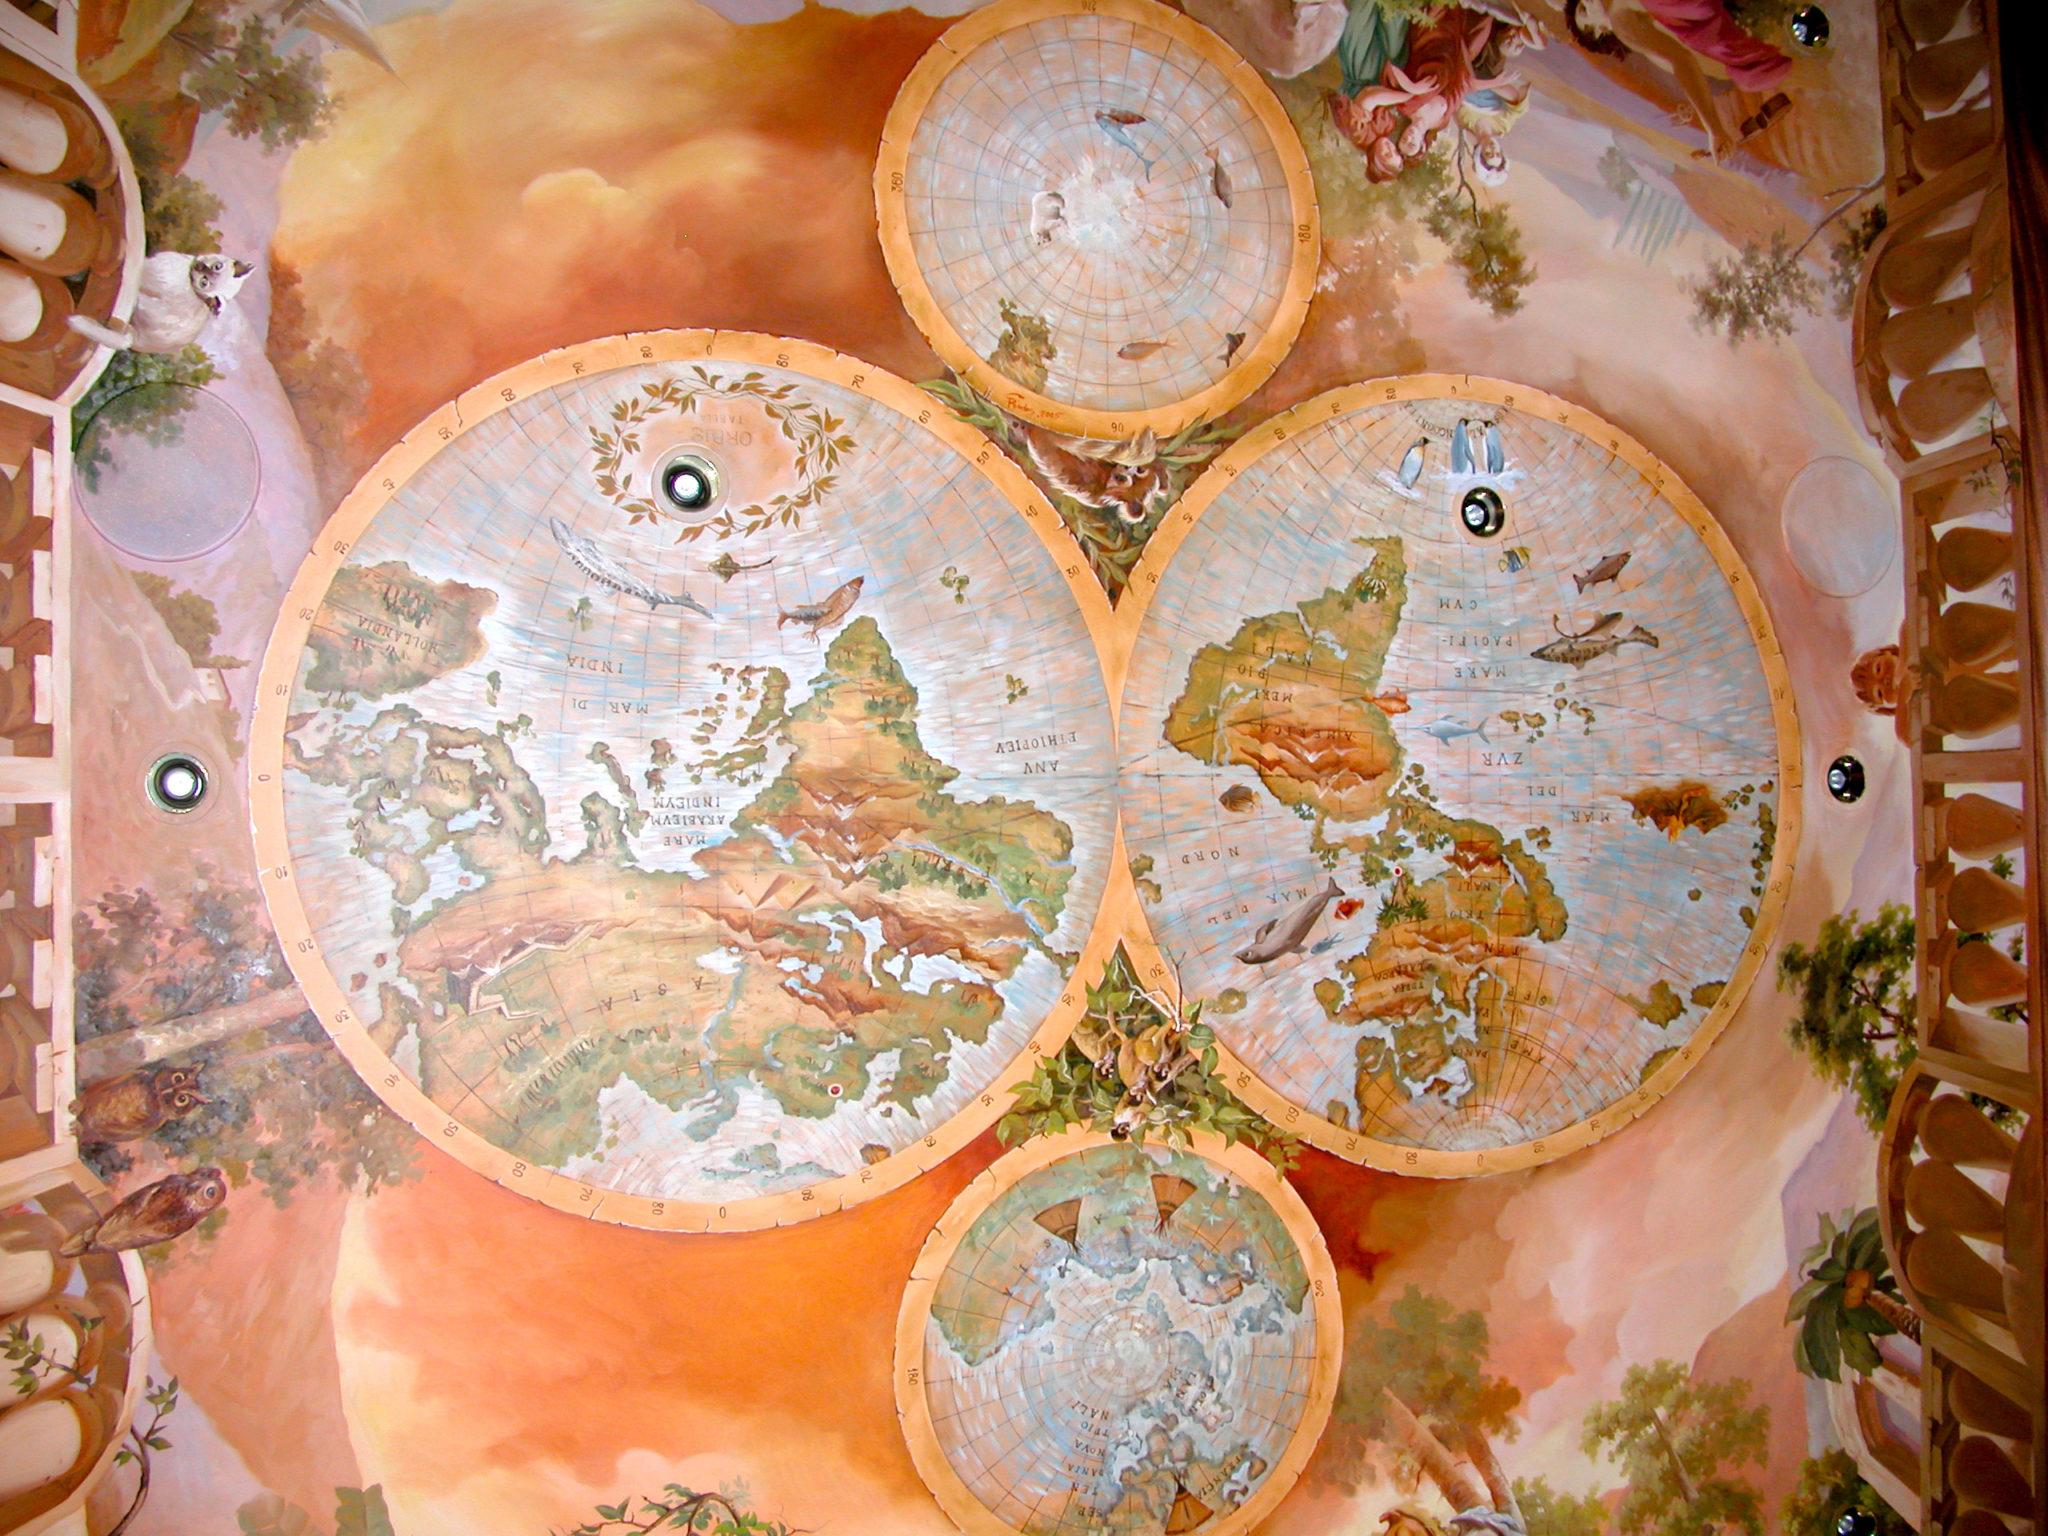 Old World Map Mural.Residential Mural With Old World Map And Classical Balustrade